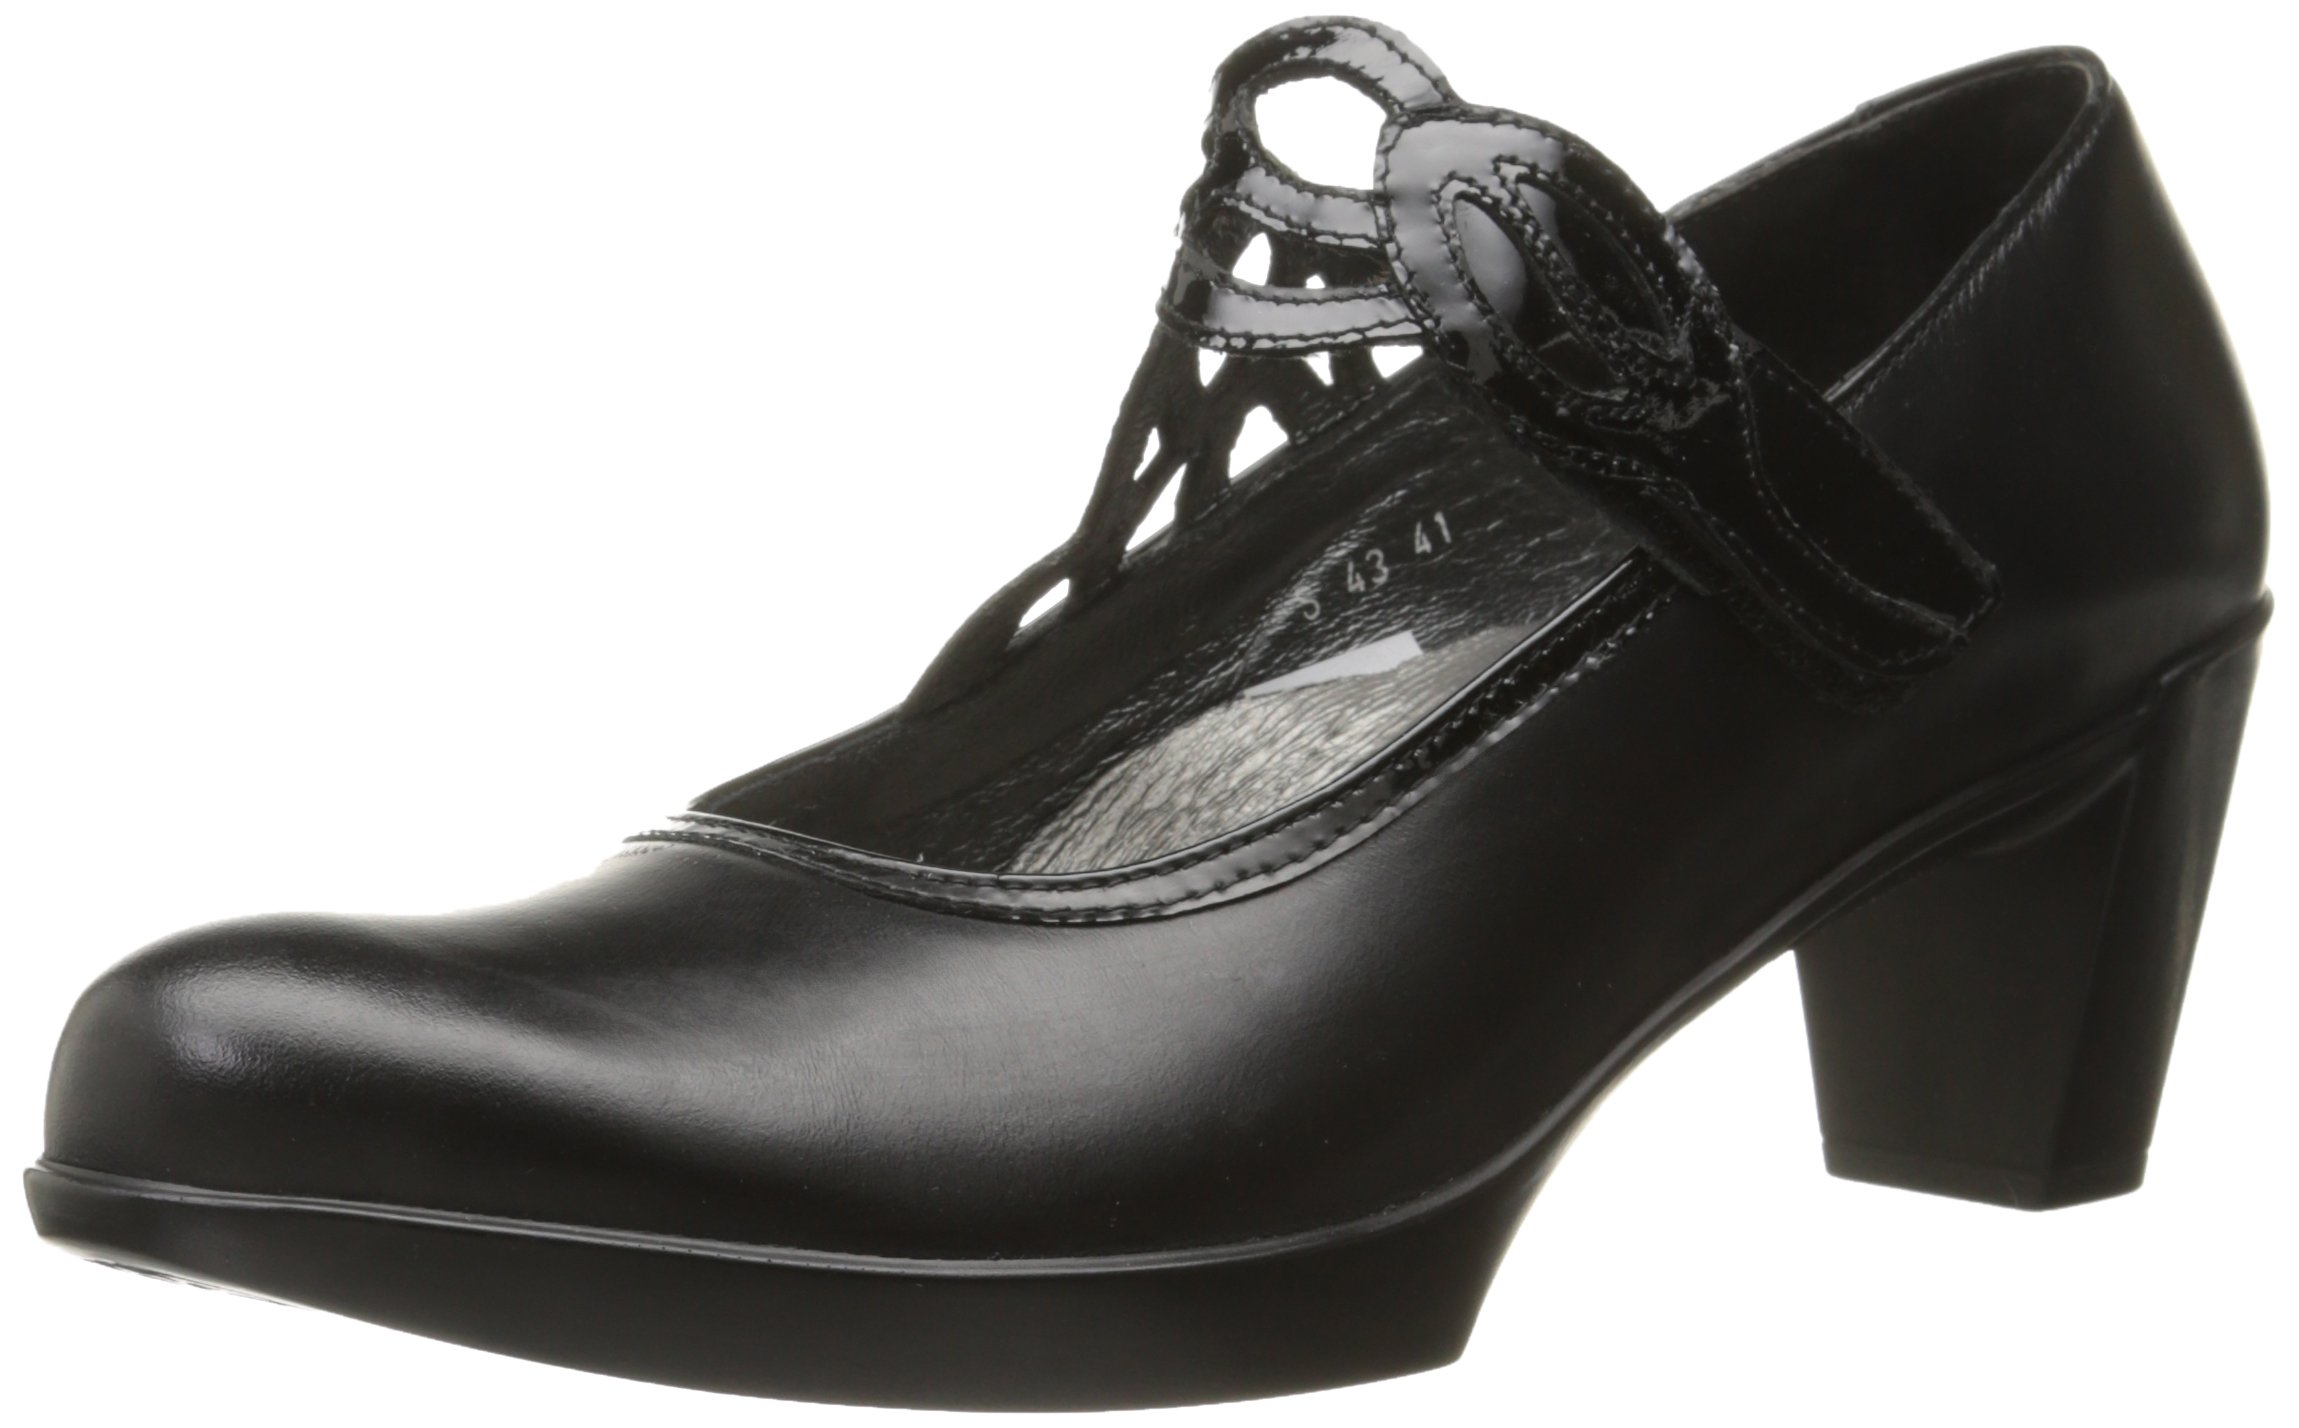 Naot Women's Luma Dress Pump, Black Madras Leather/Black Crinkle Patent Leather, 38 EU/6.5-7 M US by NAOT